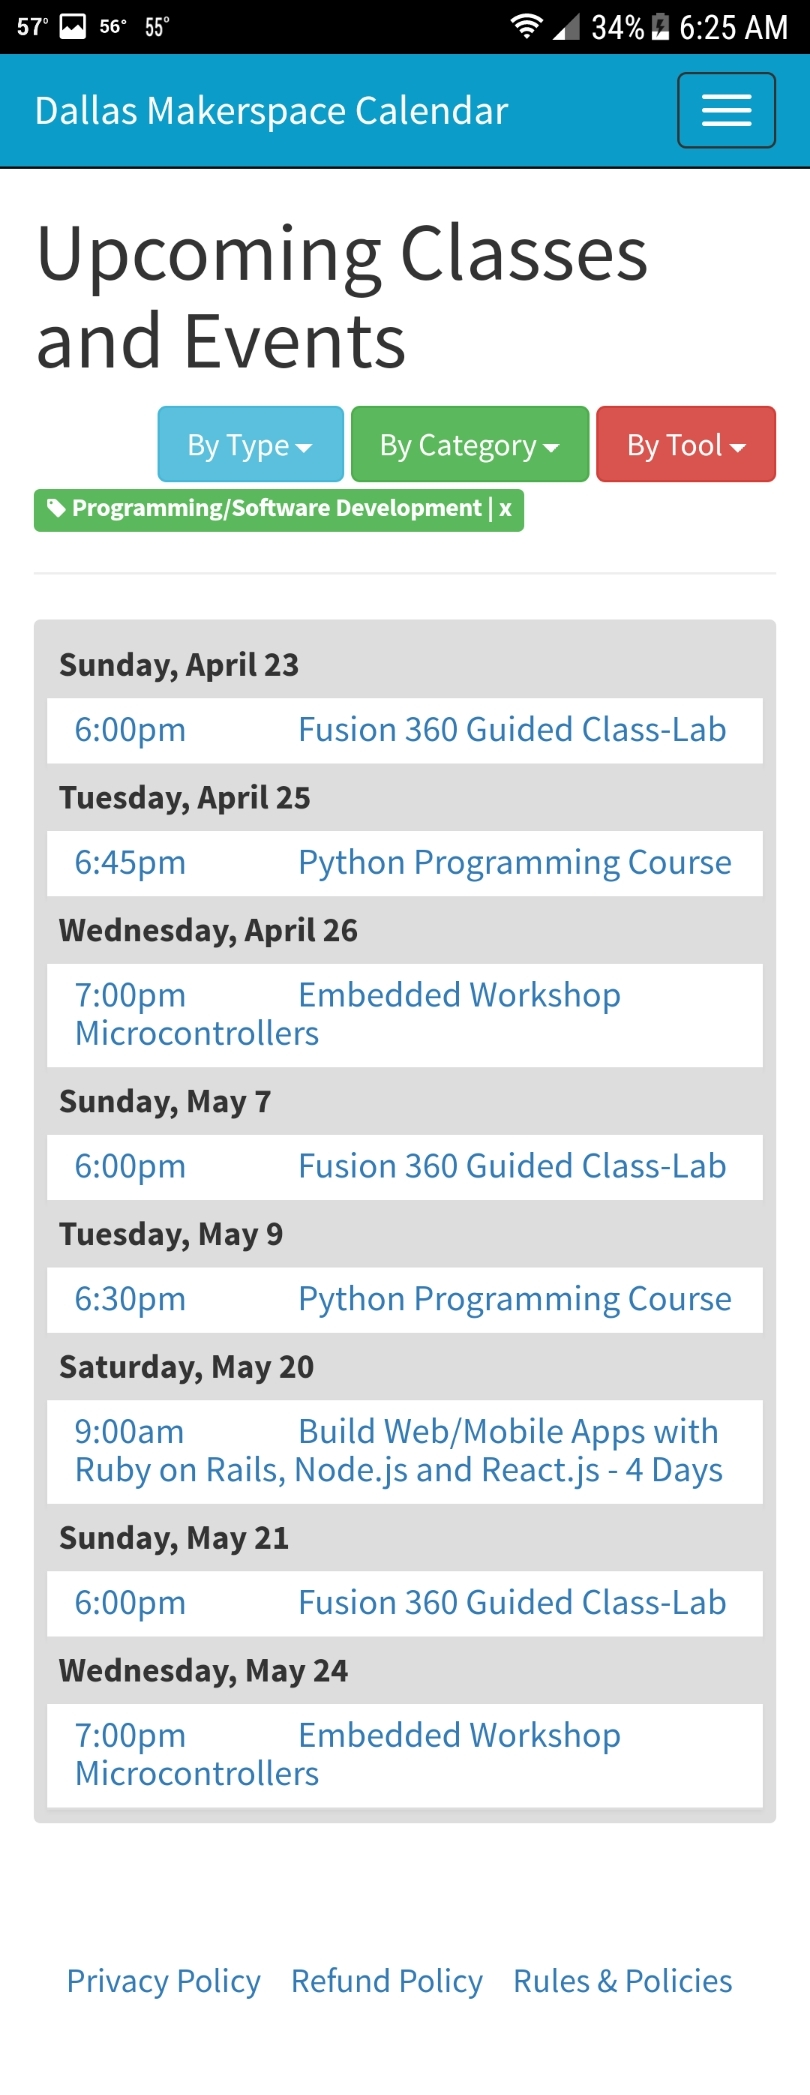 Is there a Fusion 360 class coming up? - Interest Check - Dallas